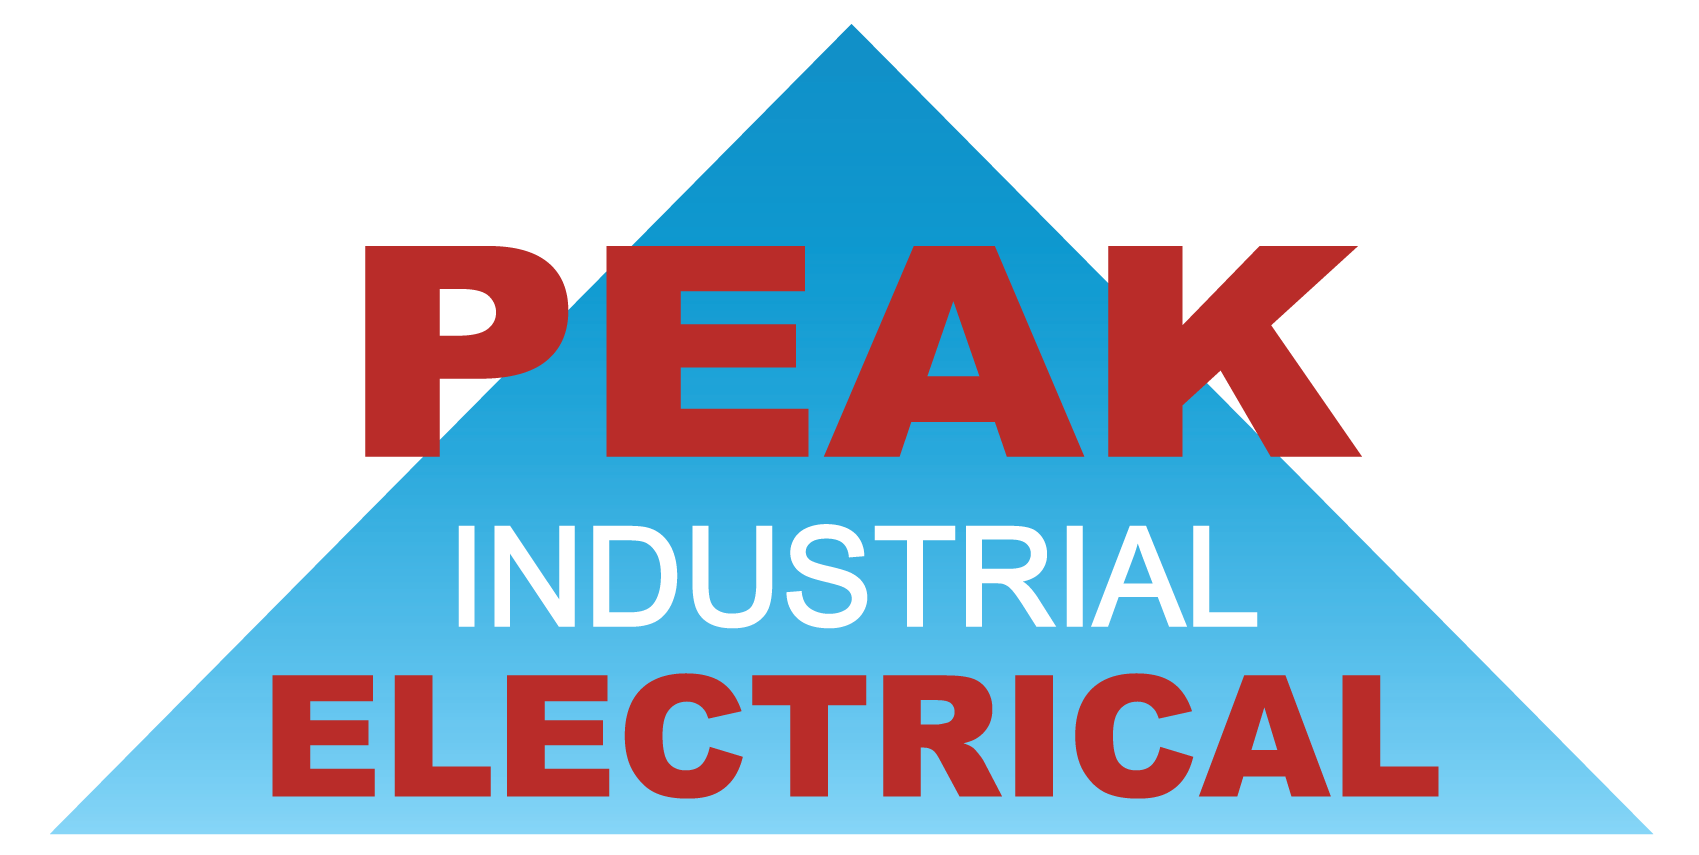 Peak Industrial Electrical